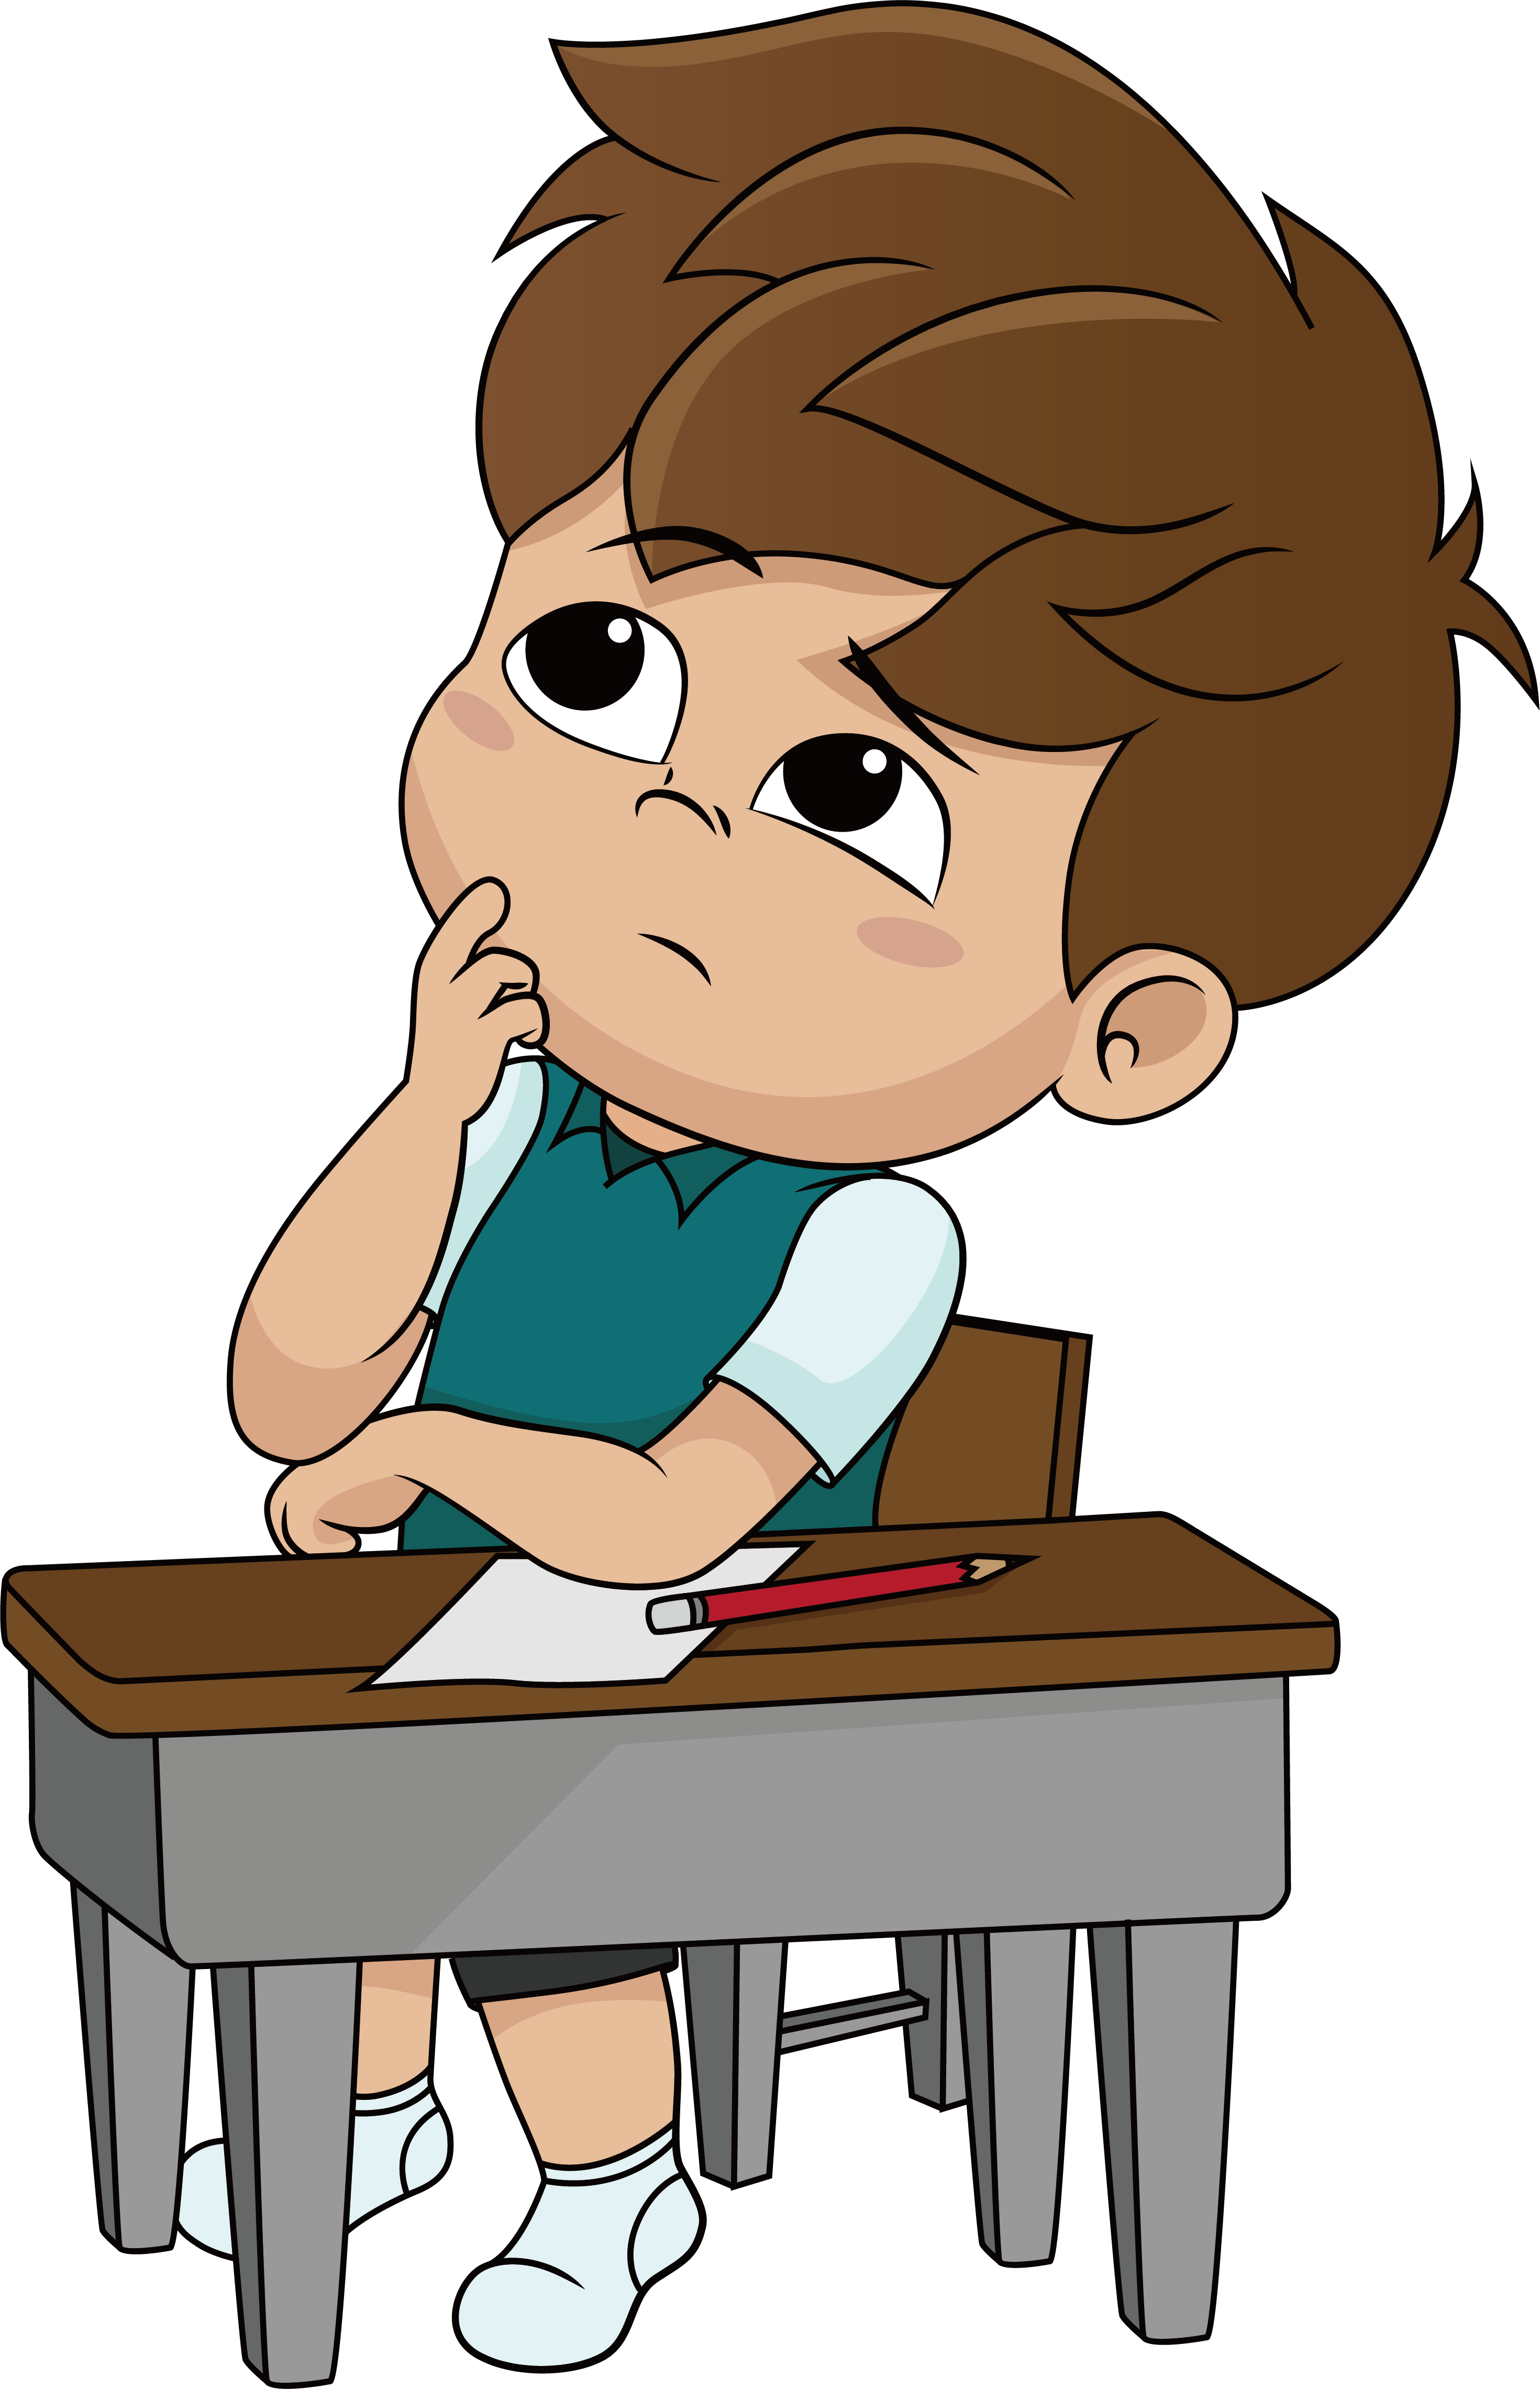 Boy thinking png. Royalty free thought illustration